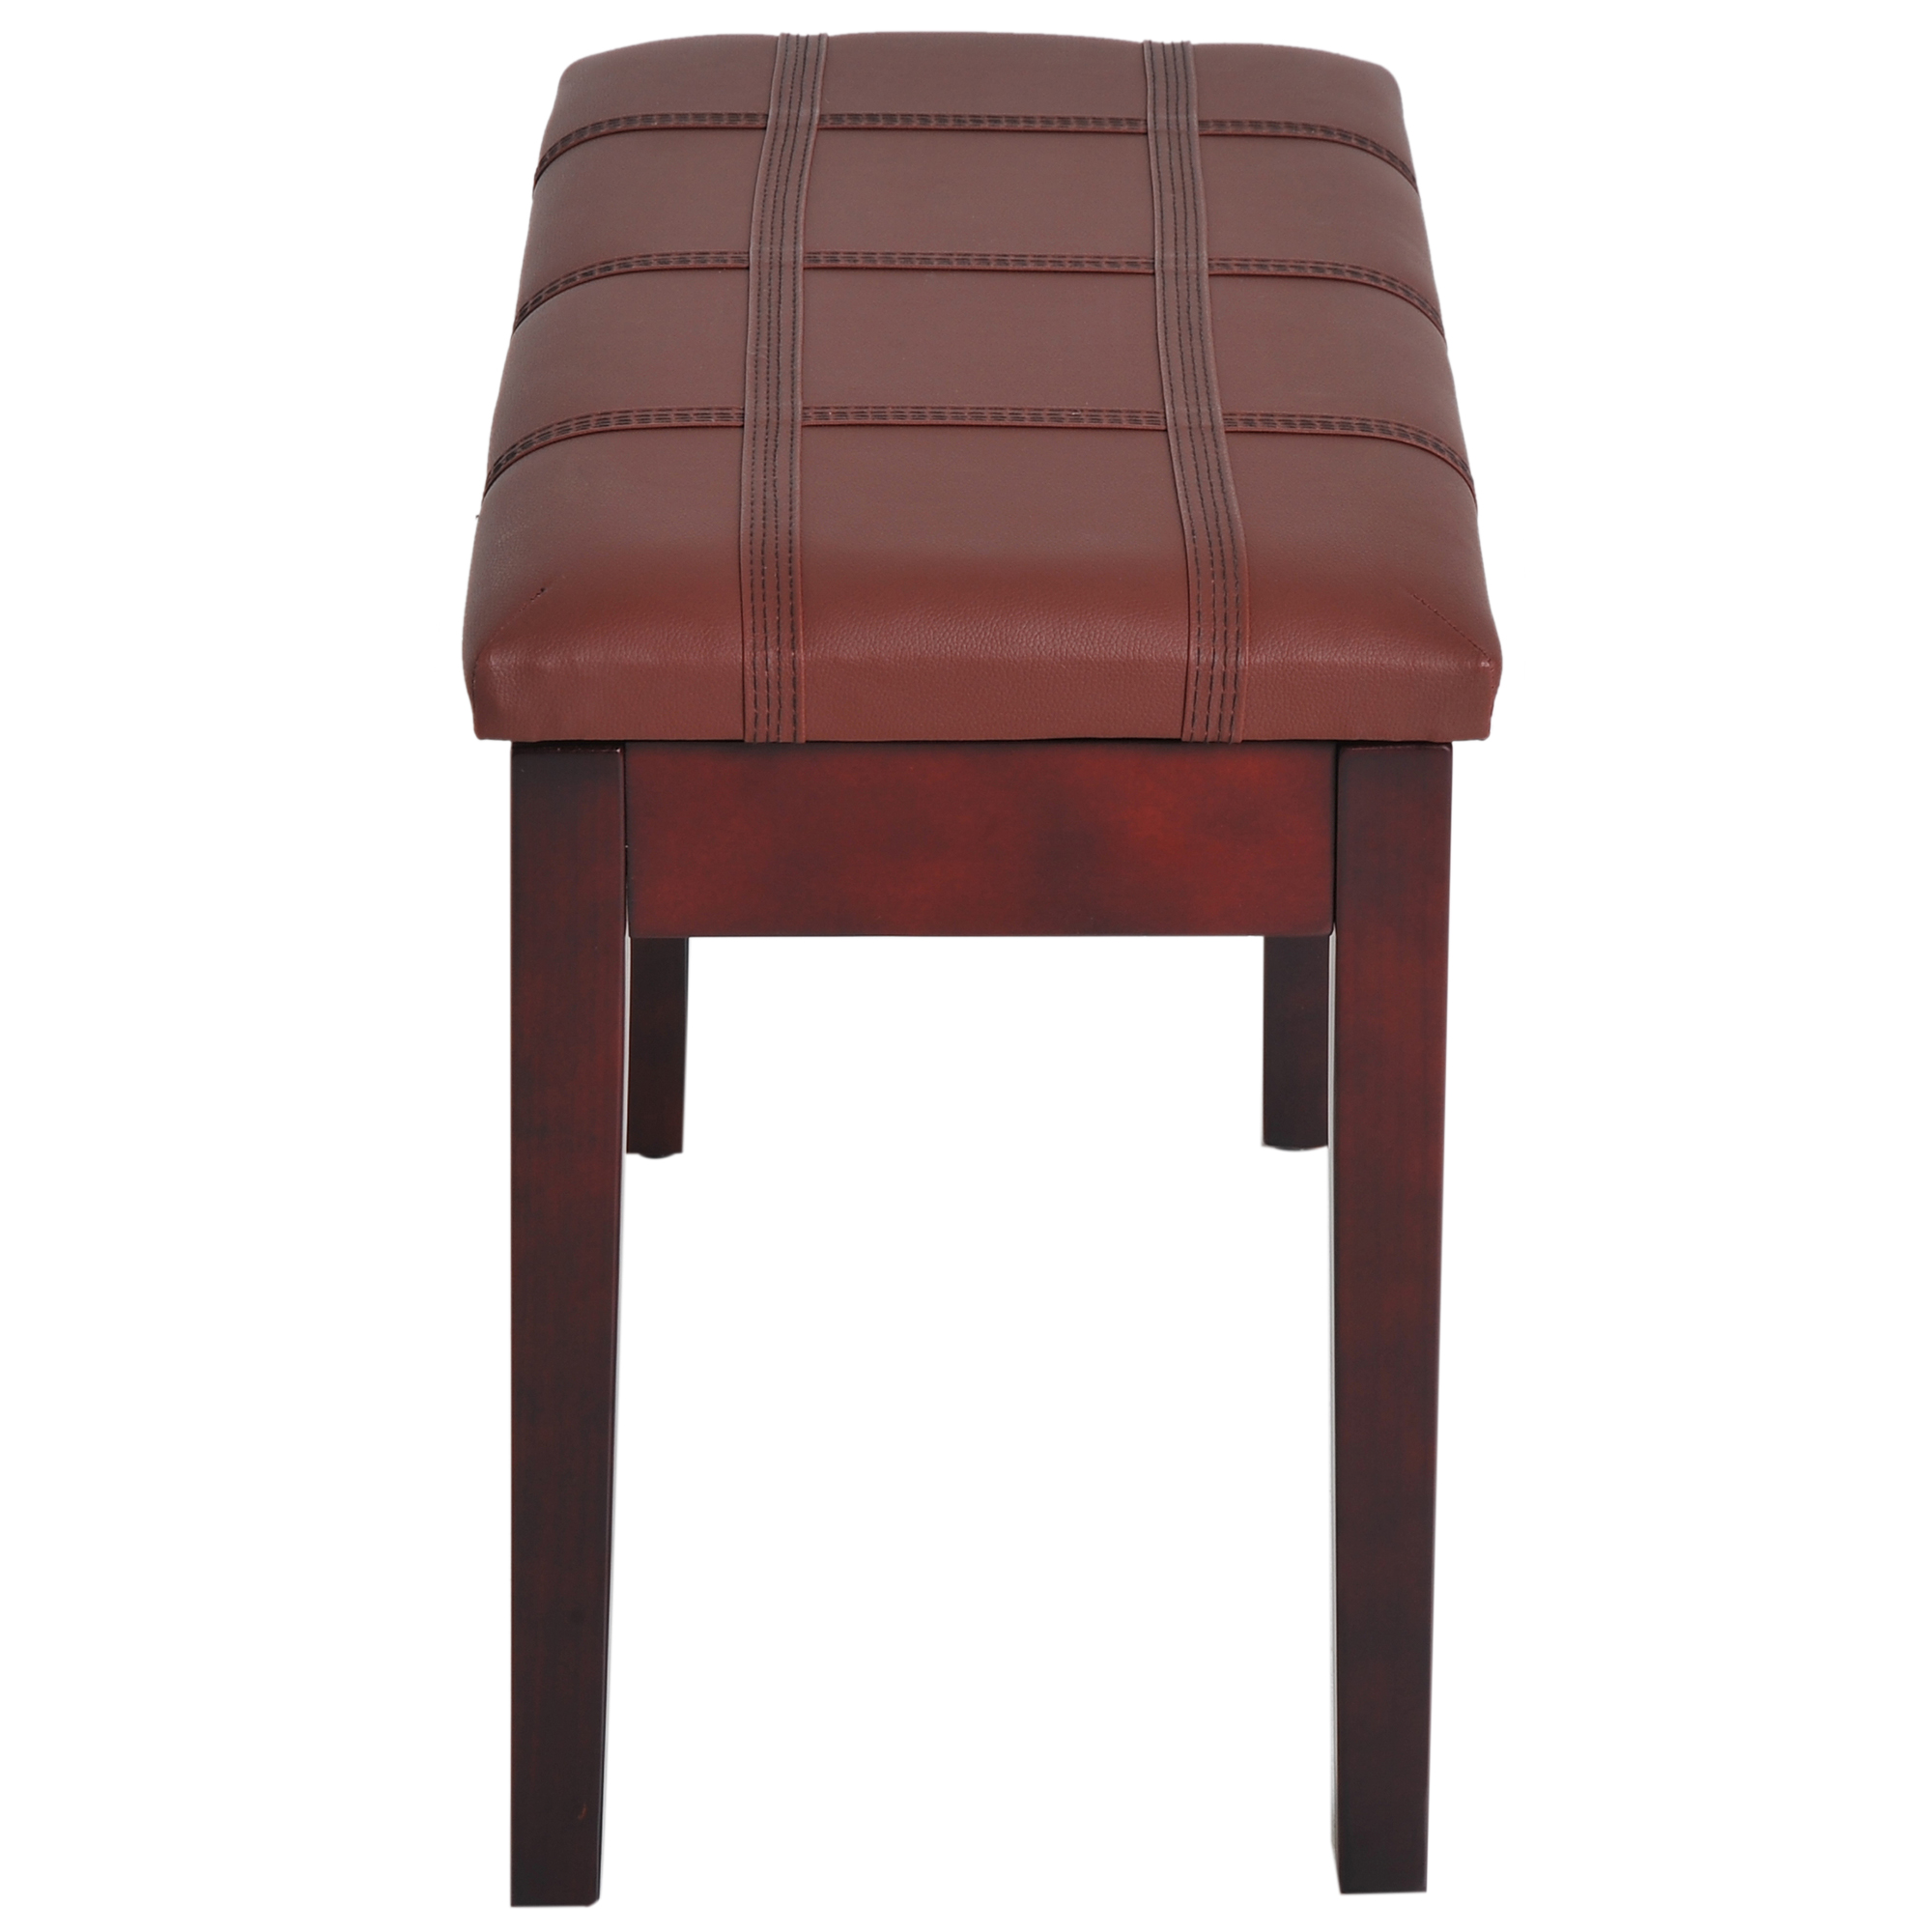 Two-Person-Lift-Top-Piano-Storage-Bench-Faux-Leather-Keyboard-Stool-Birchwood thumbnail 19